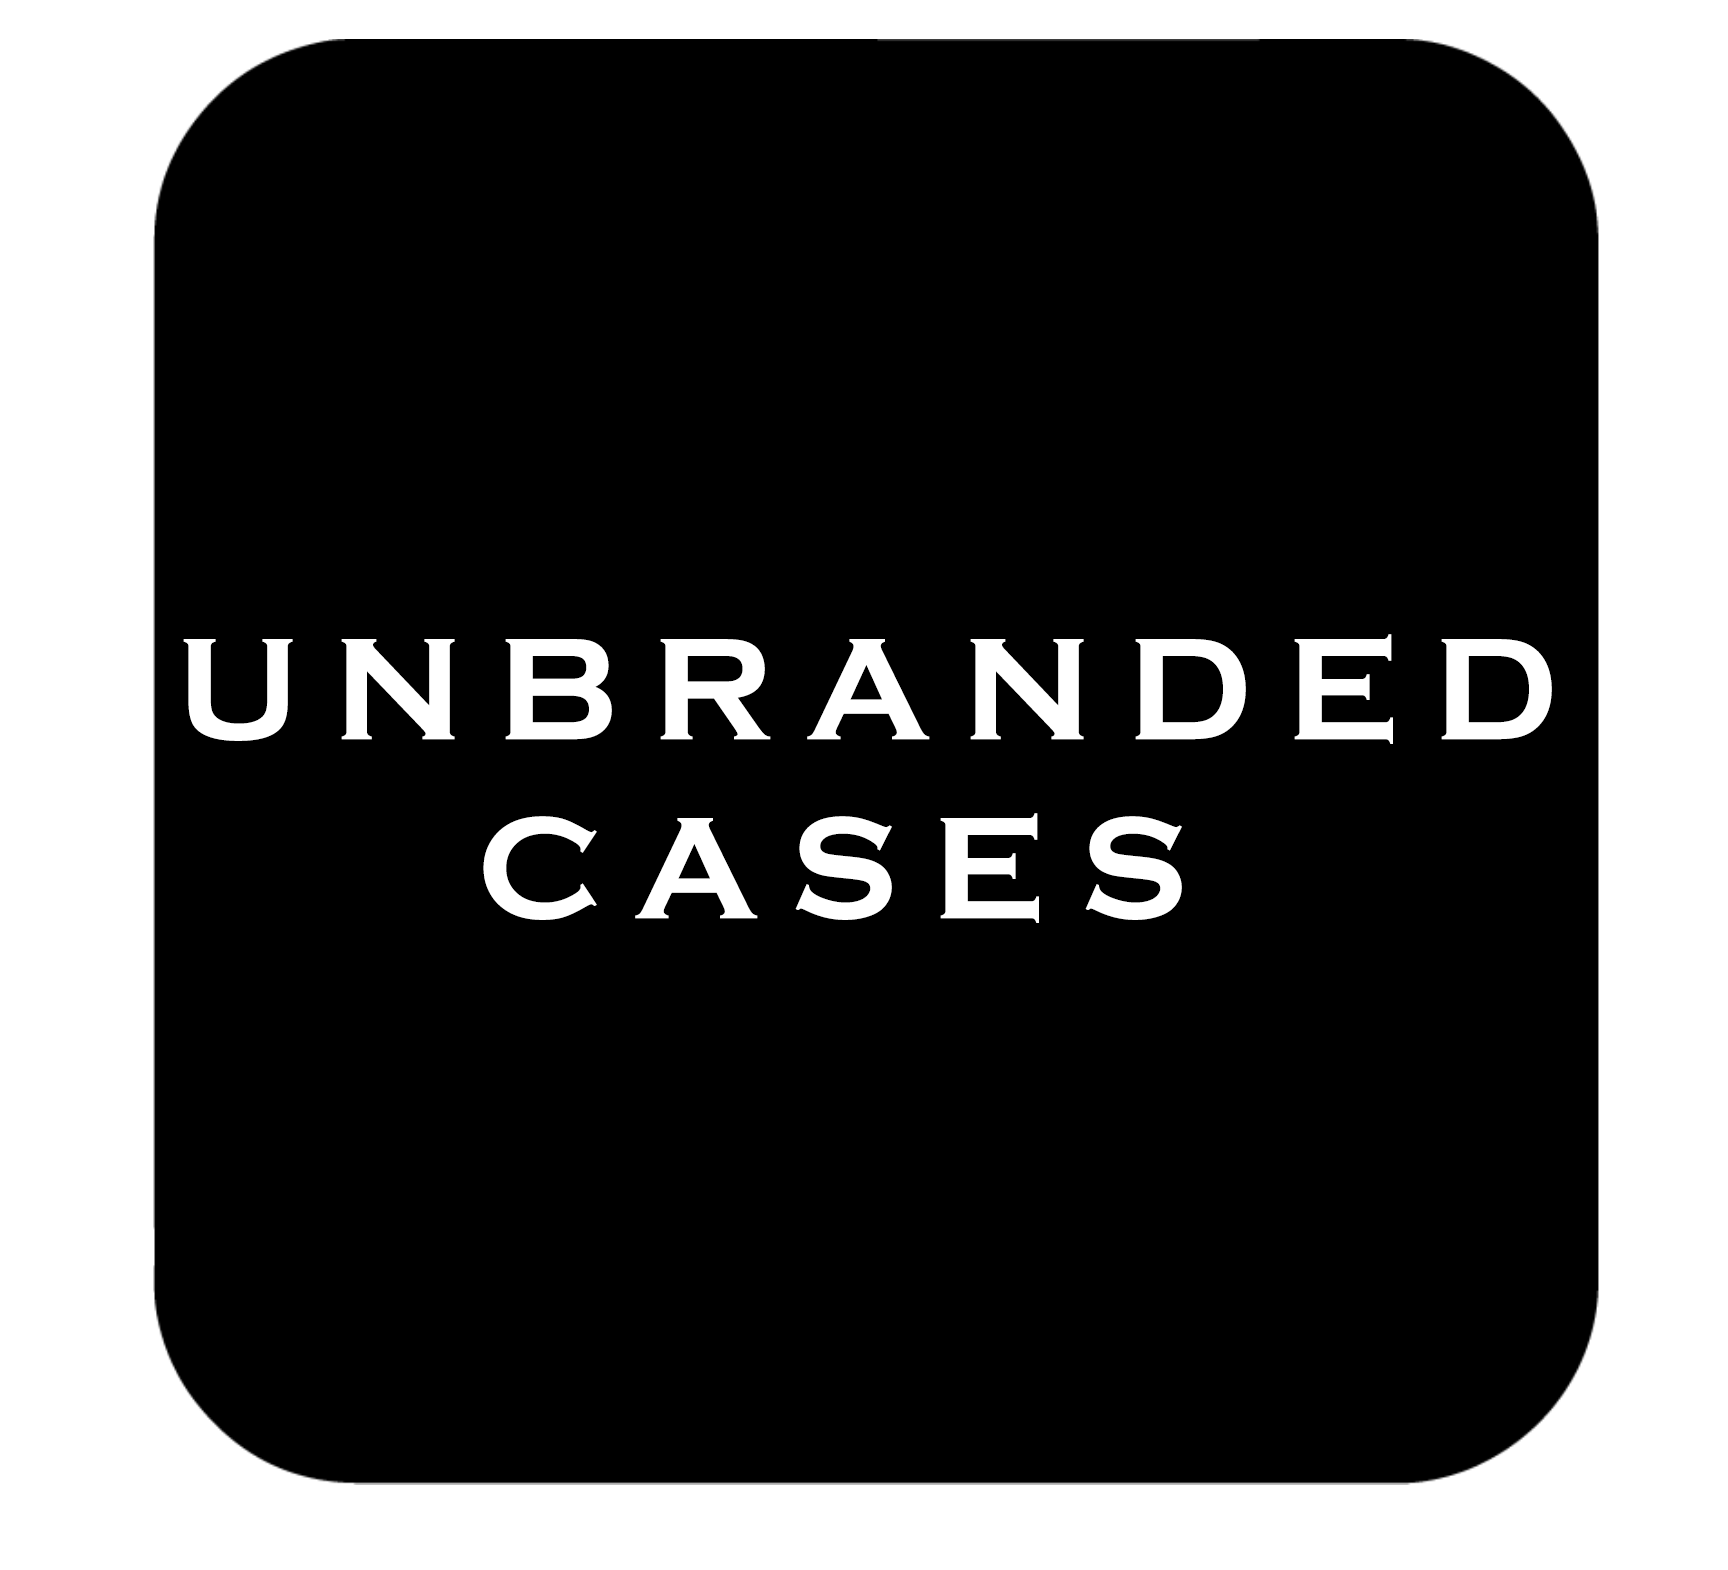 UNBRANDED CASES